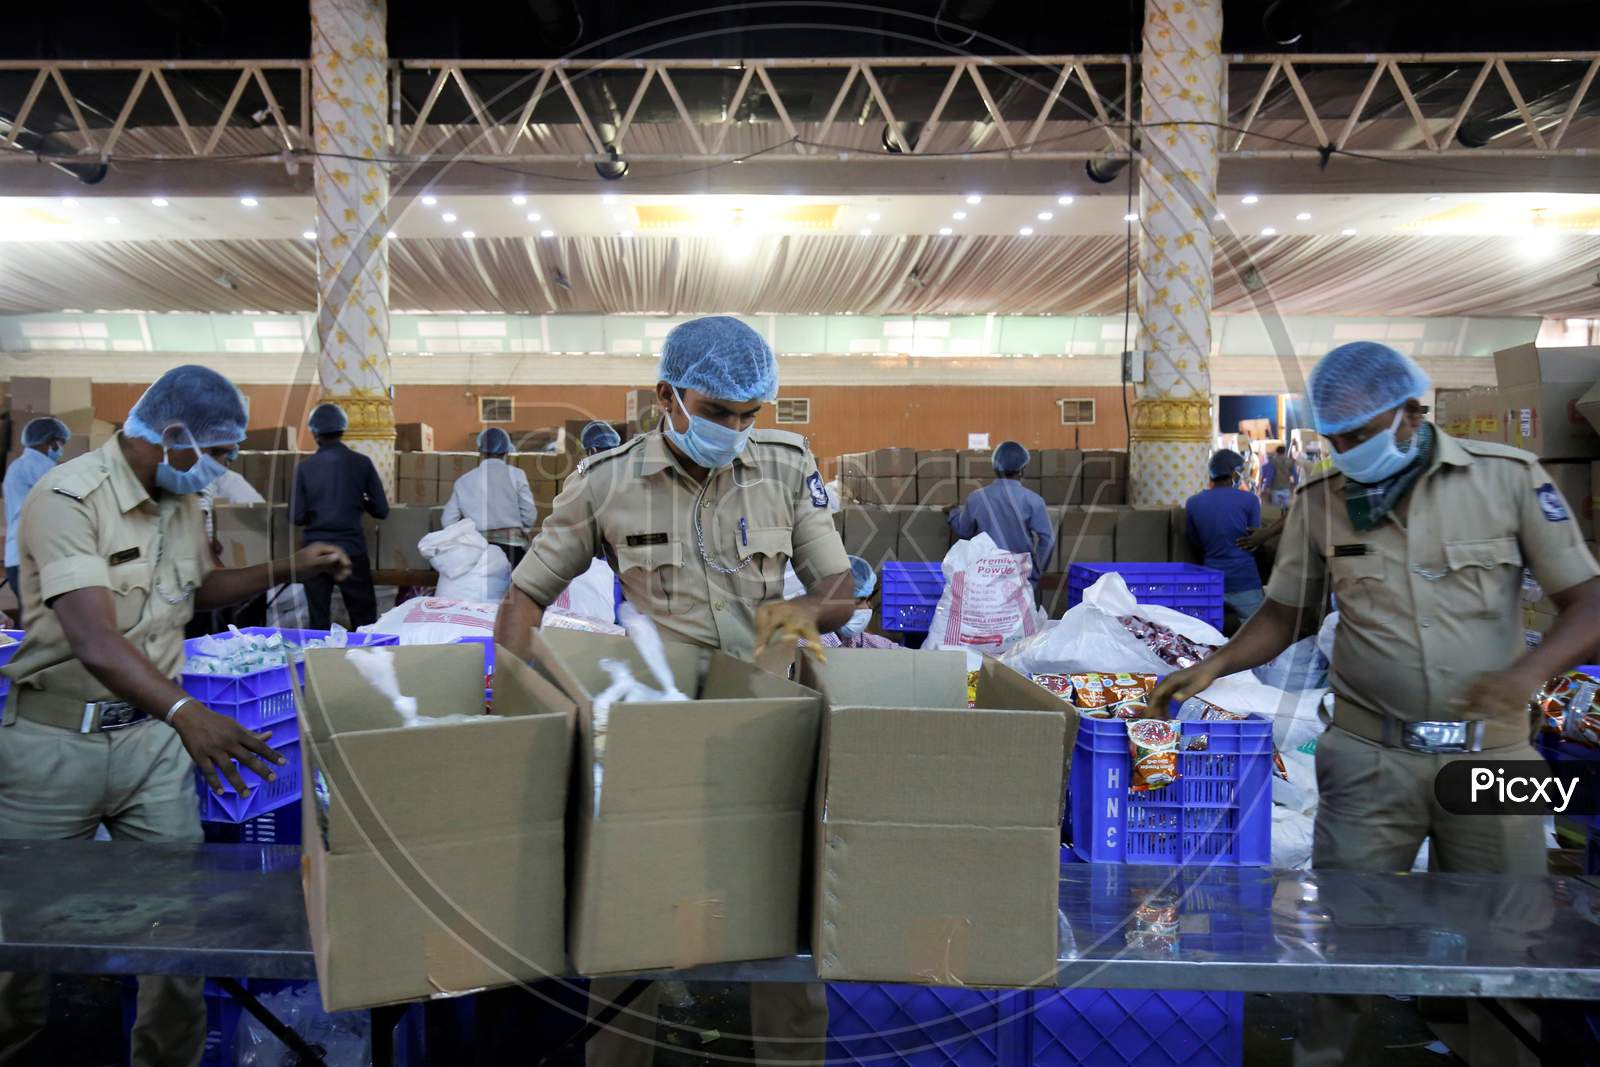 Bangalore City Police Taking The Groceries Packets For Distribution For Poor People In Bangalore City During Corona Virus Or Covid-19 Pandemic